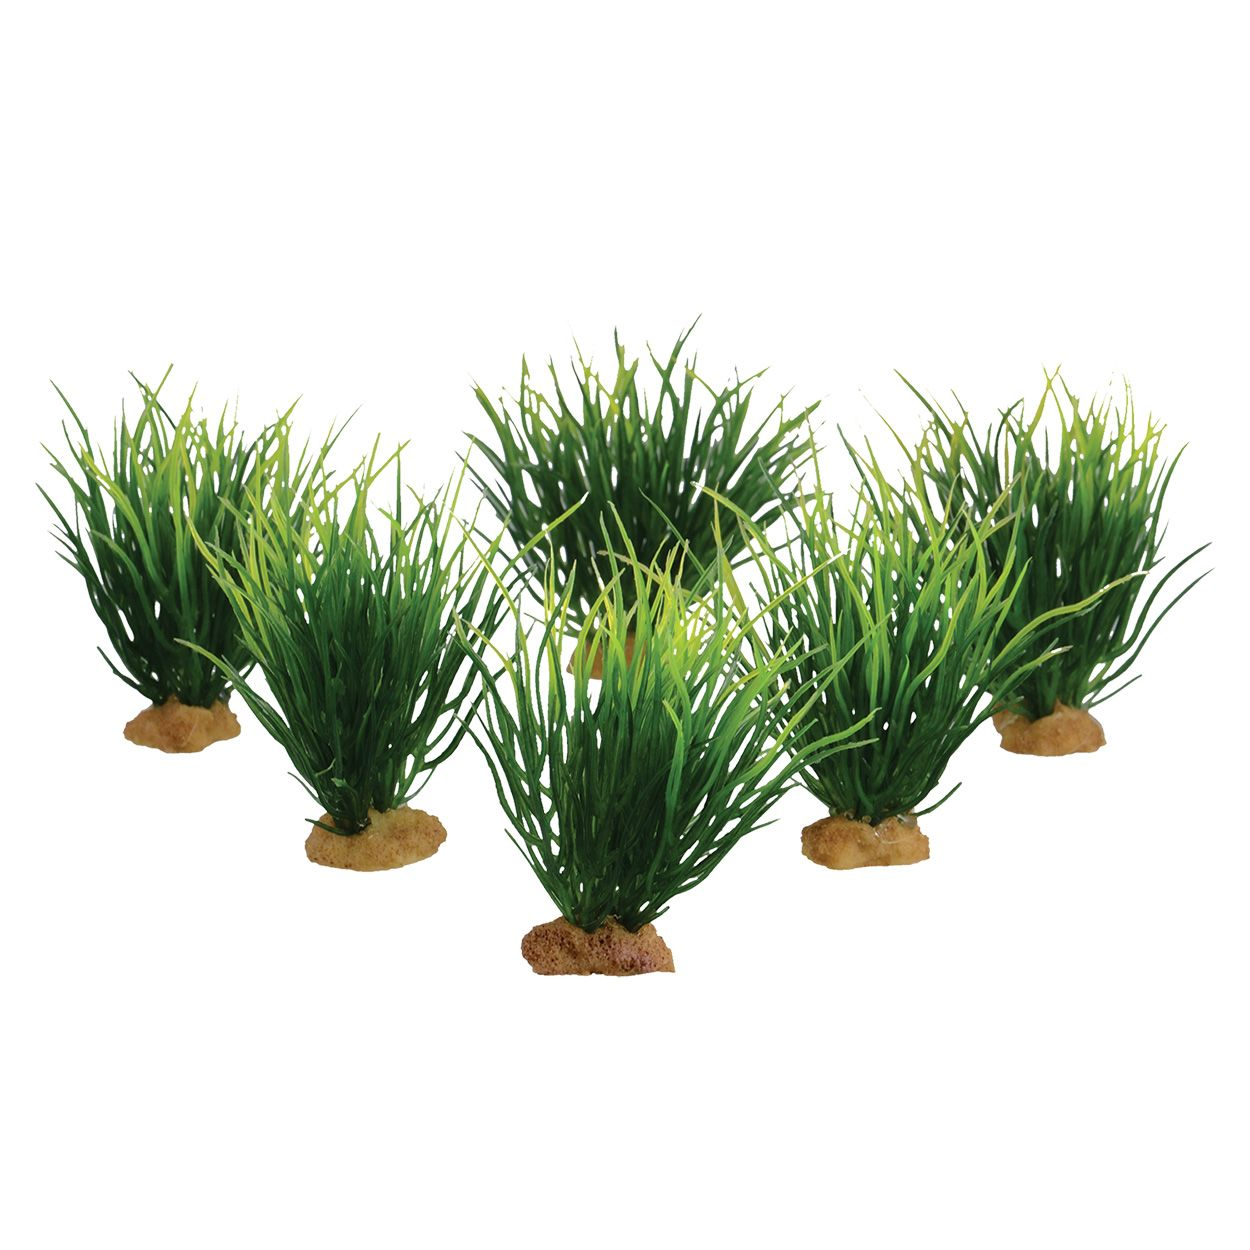 Underwater Treasures Carp Grass - 3.5 - 6 pk